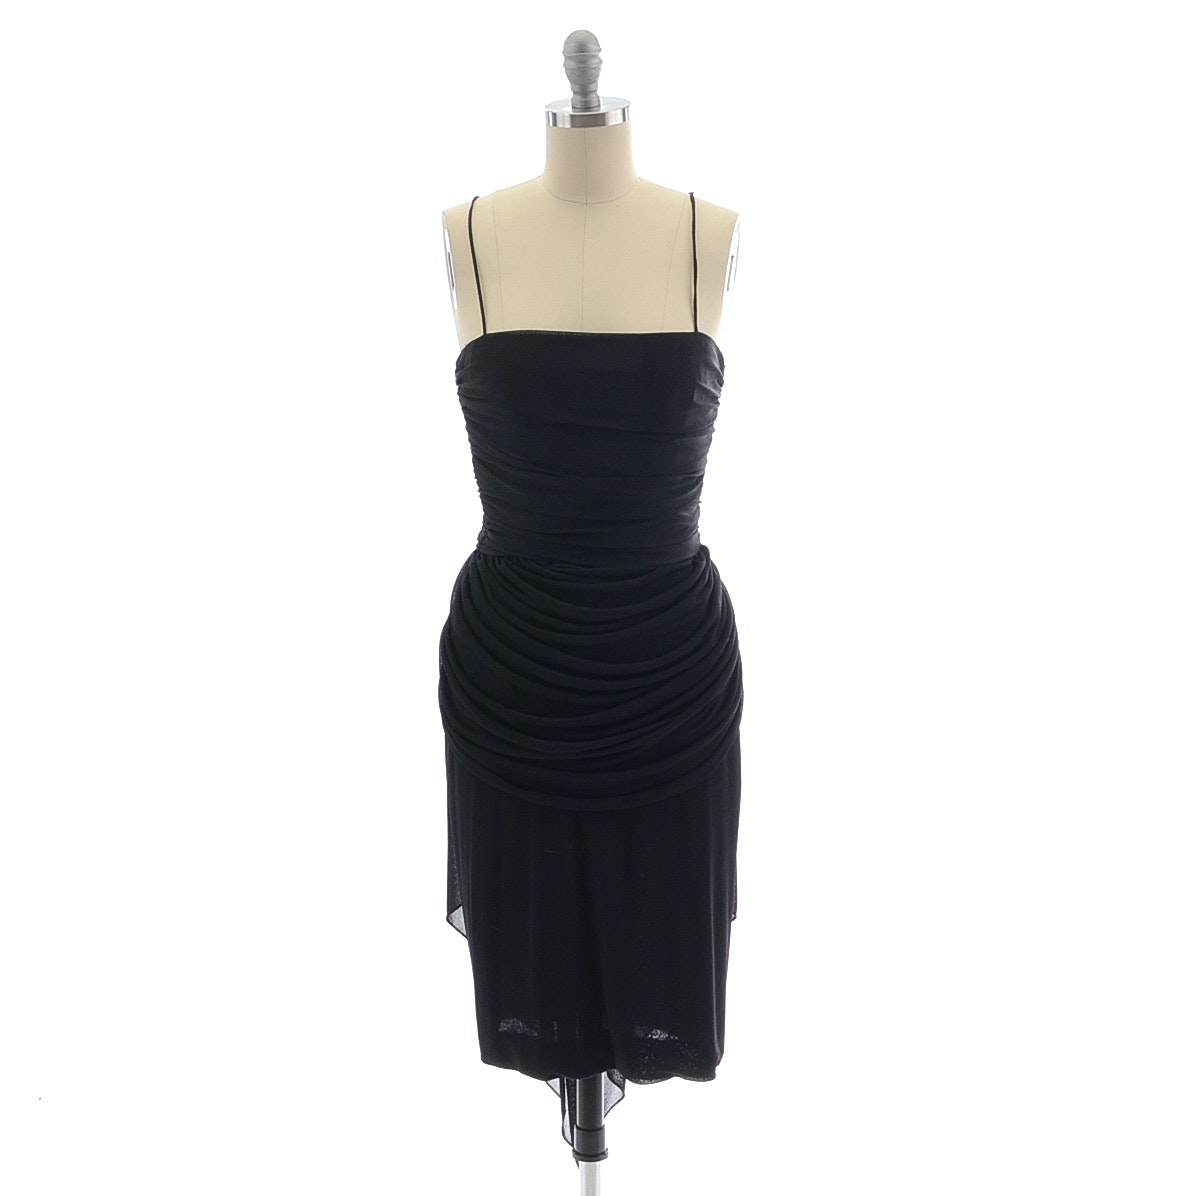 Black Jersey Sleeveless Cocktail Dress with Ruched Panels and Silk Chiffon